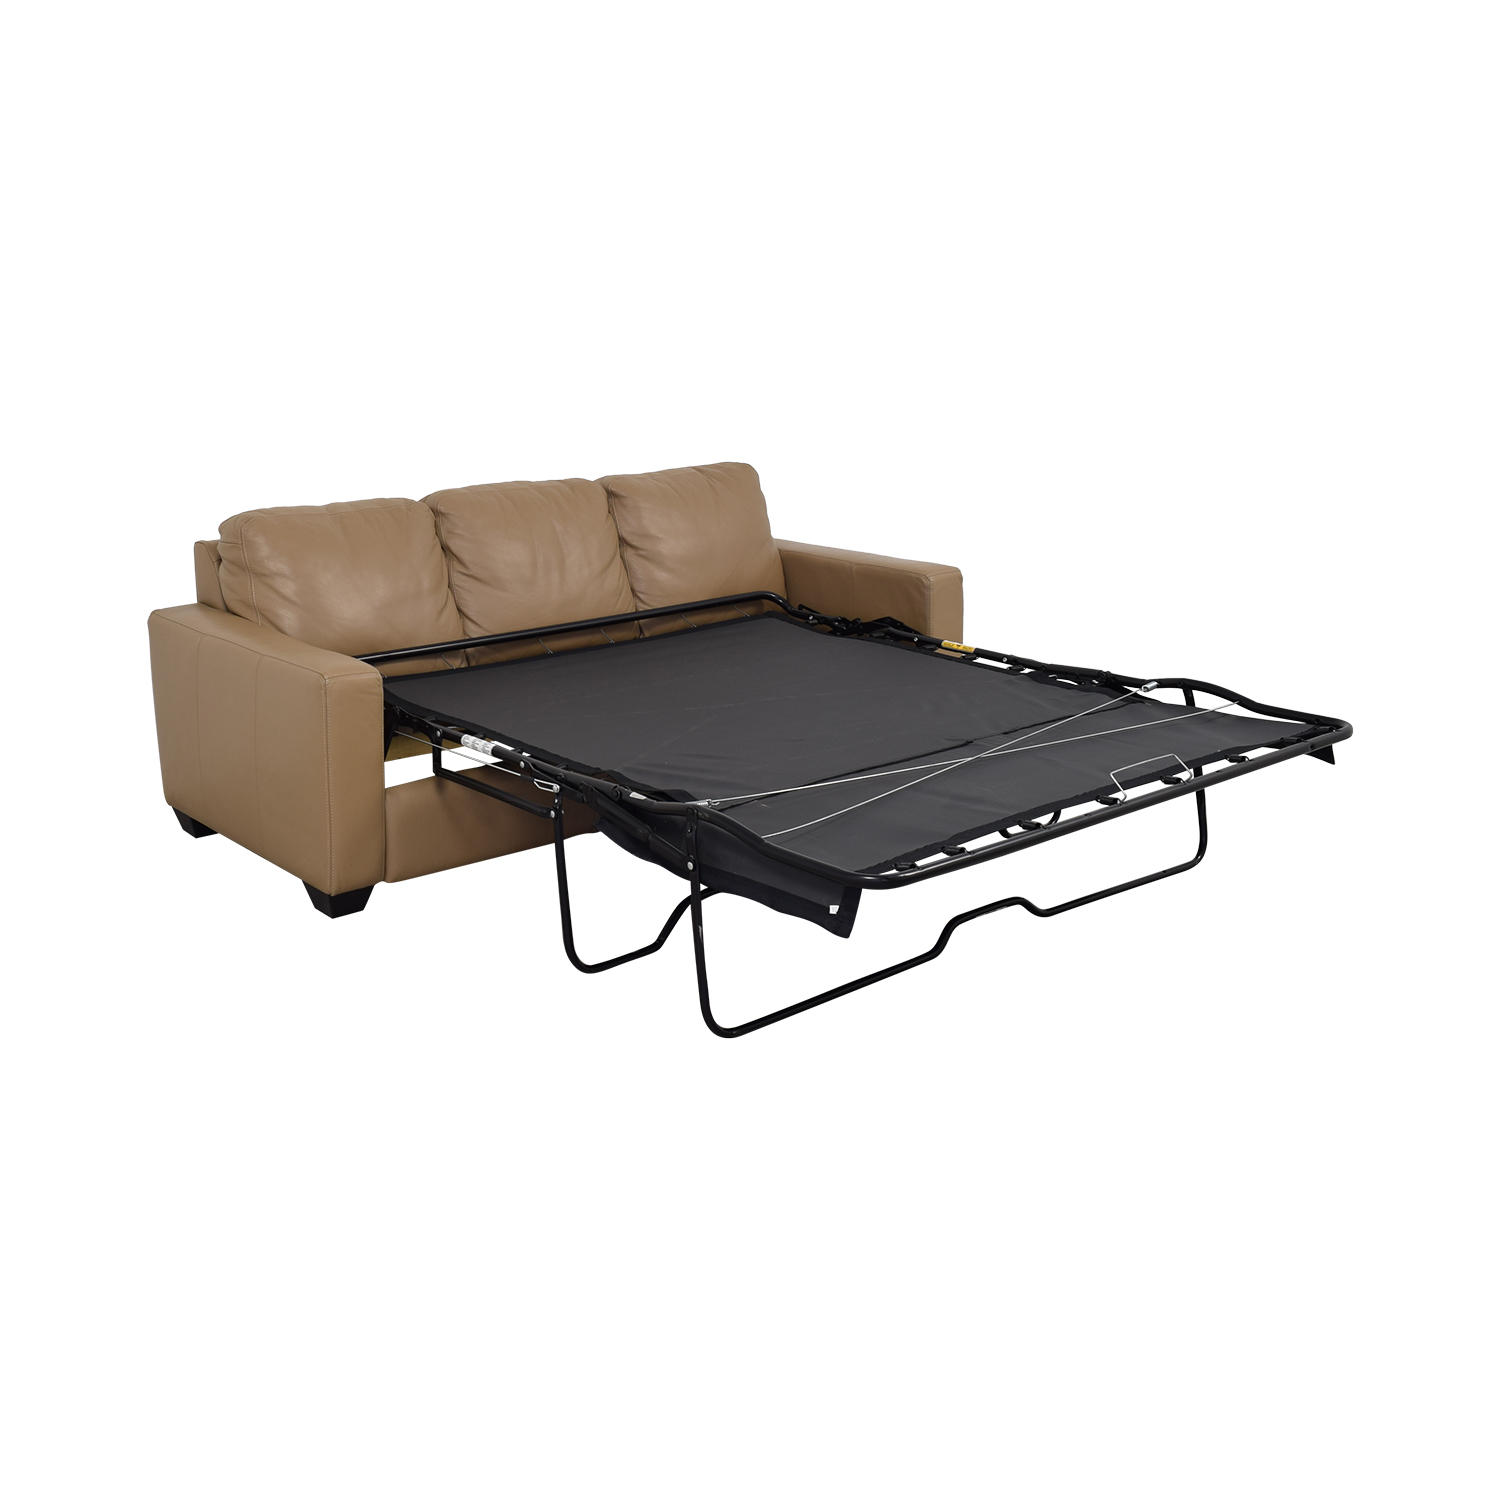 JC Penney JC Penney Leather Sleeper Sofa discount